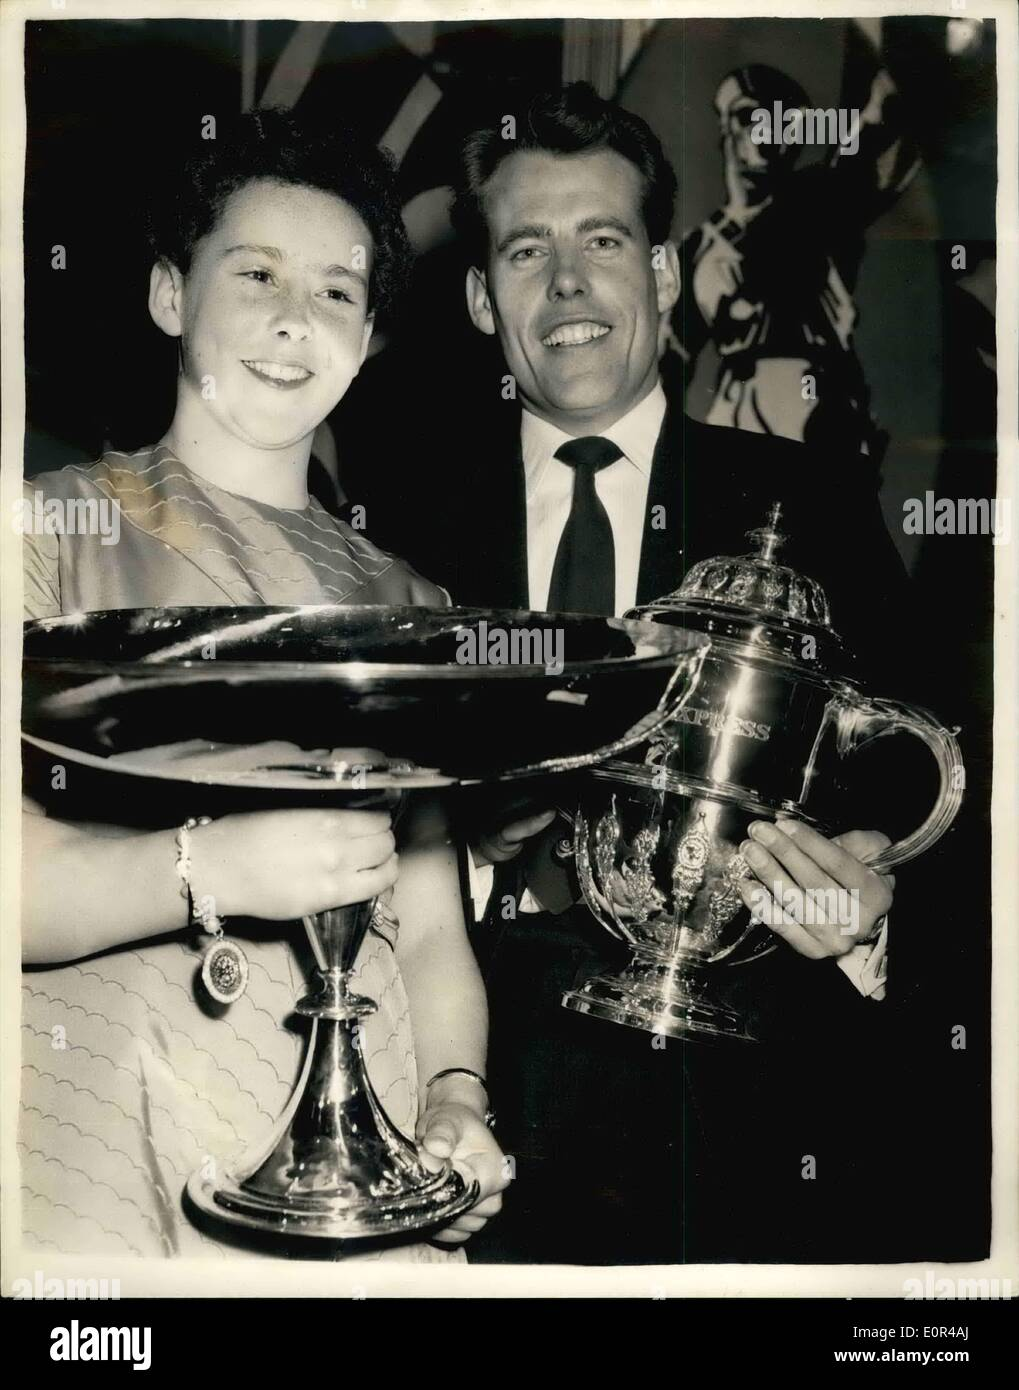 Dec. 12, 1957 - 12-12-57 The Sportsman and Sportswoman of the Year. George Derek Ibbotson, Britain's famous runner, was elected Sportsman of the Year when he swept into first place in a record ballot of votes. Diana Wilkinson, the 13-year old swimmer of Stockport, Cheshire, was elected Sportswoman of the Year . The youngest ever lassie to win this national accolade. Last night millions of TV viewers saw the presentation of the trophies at Grosvenor House - Stock Image